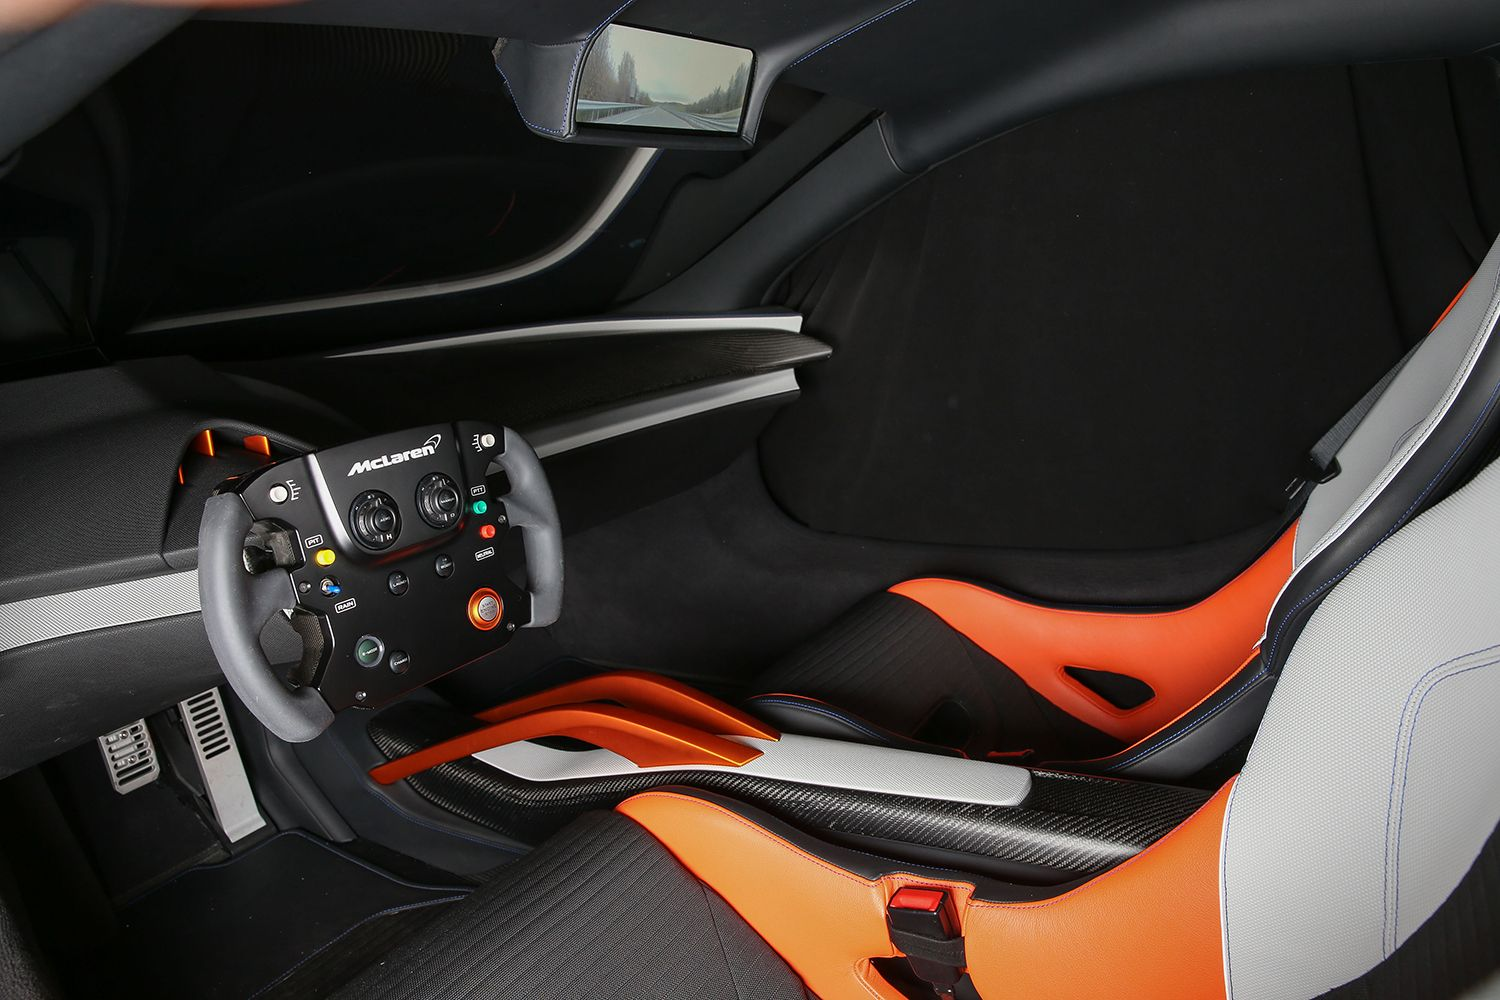 The Mclaren 675lt Jvckenwood Concept Races Into Ces With Video Game